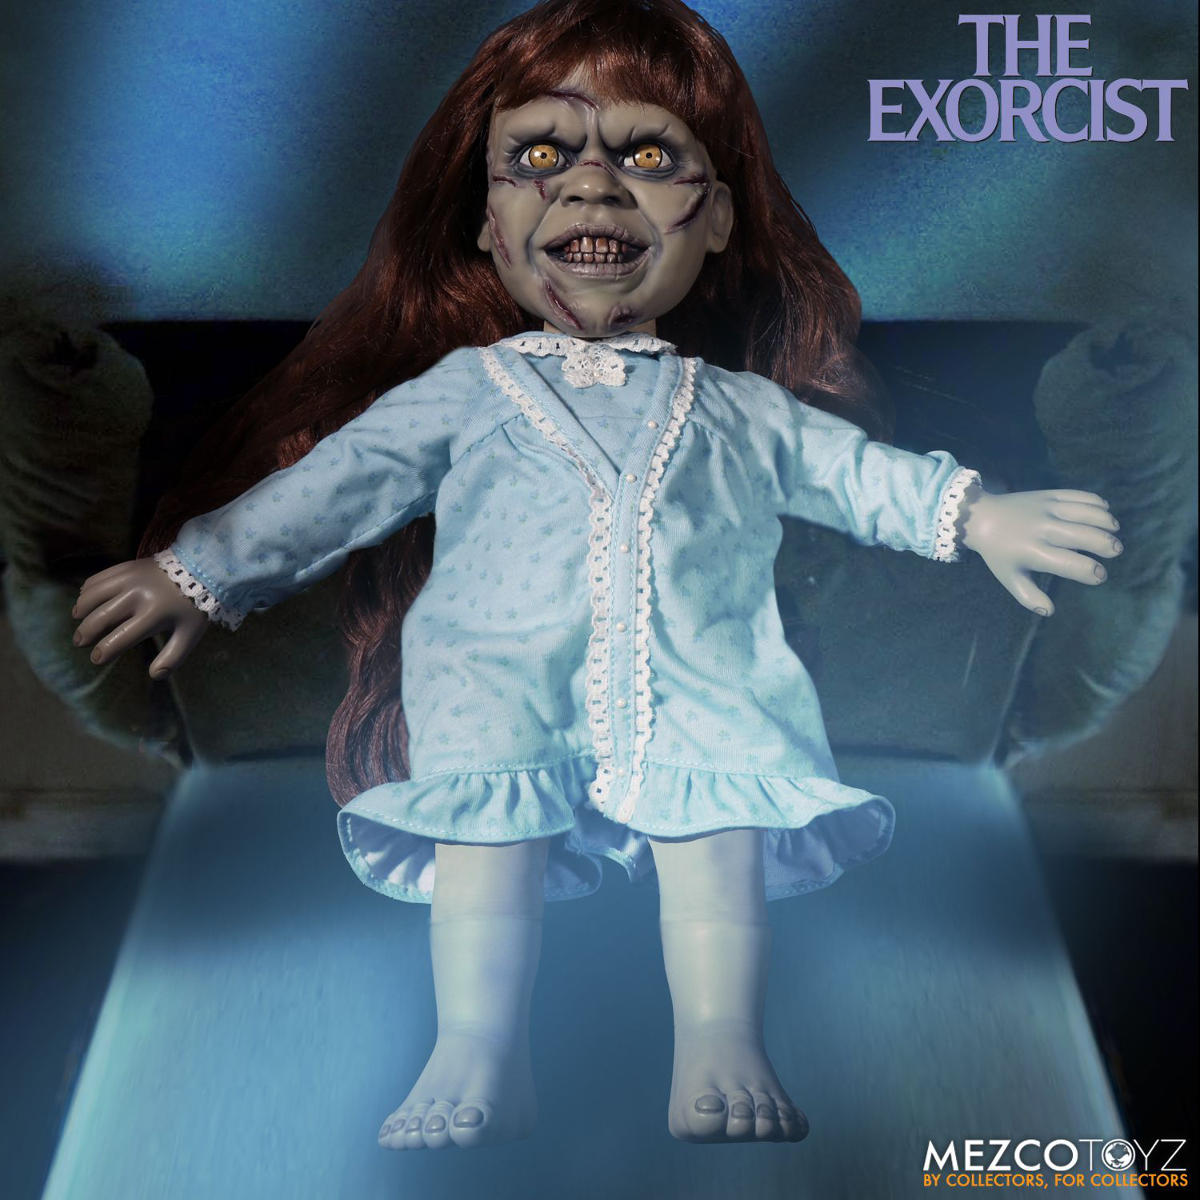 Mezco Toyz The Exorcist 1